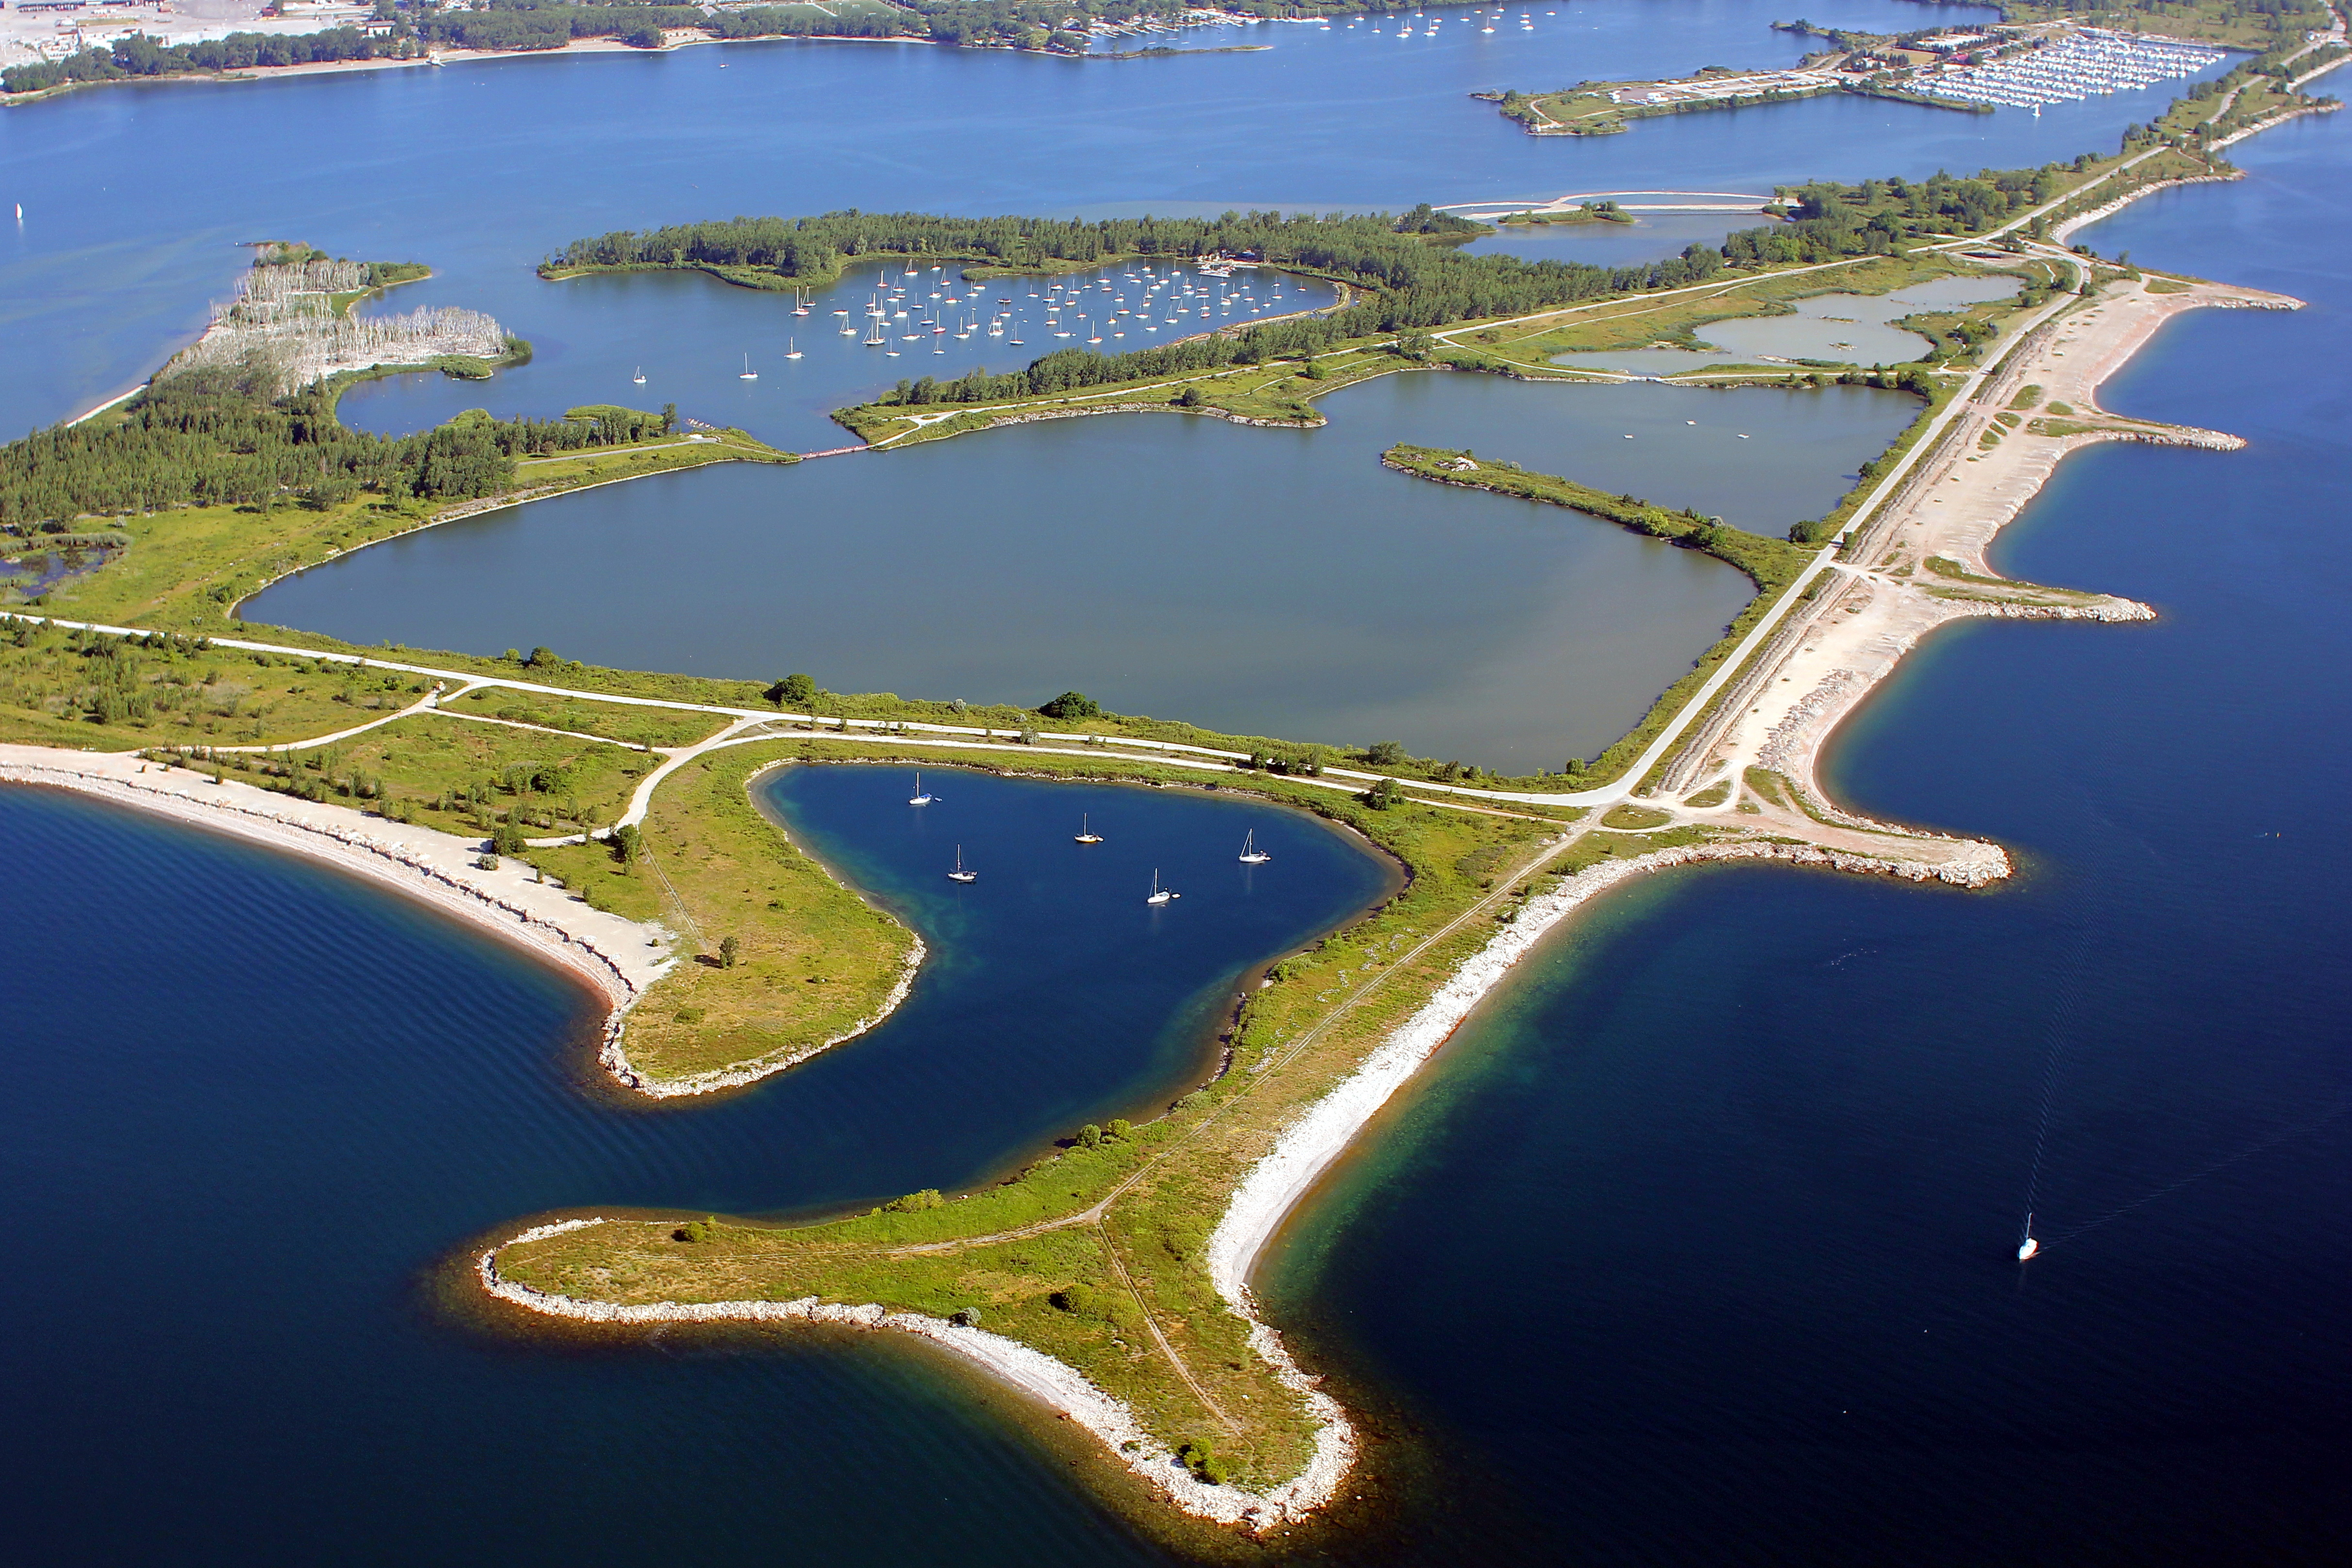 An aerial photograph of Tommy Thompson Park